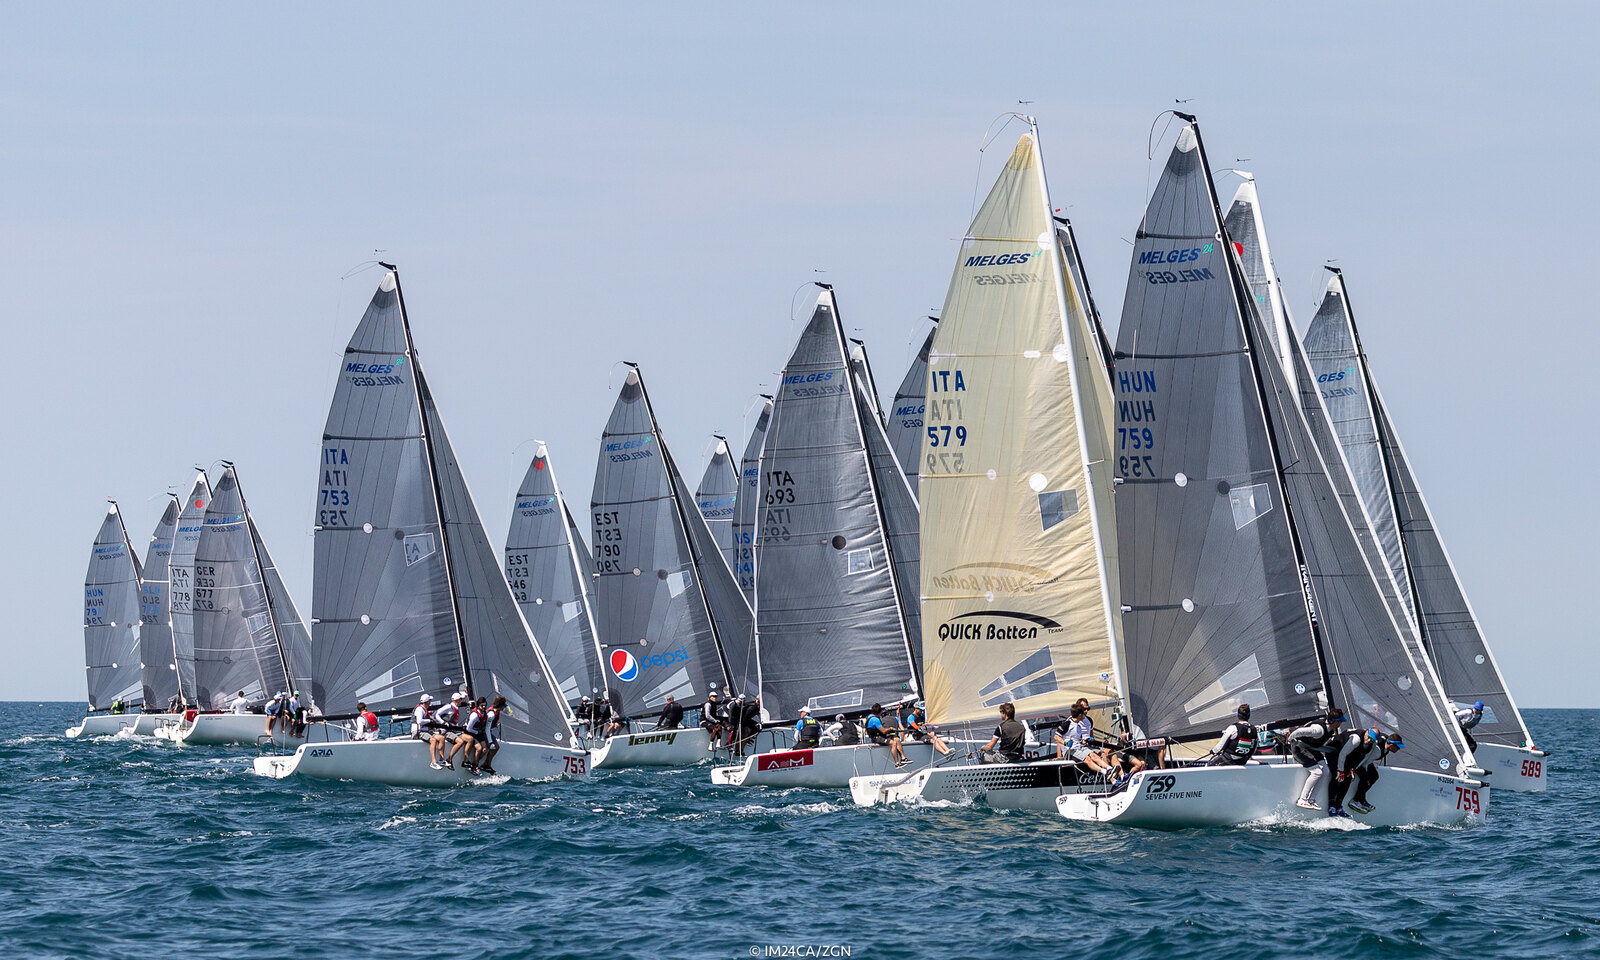 Melges 24 fleet is ready to rumble